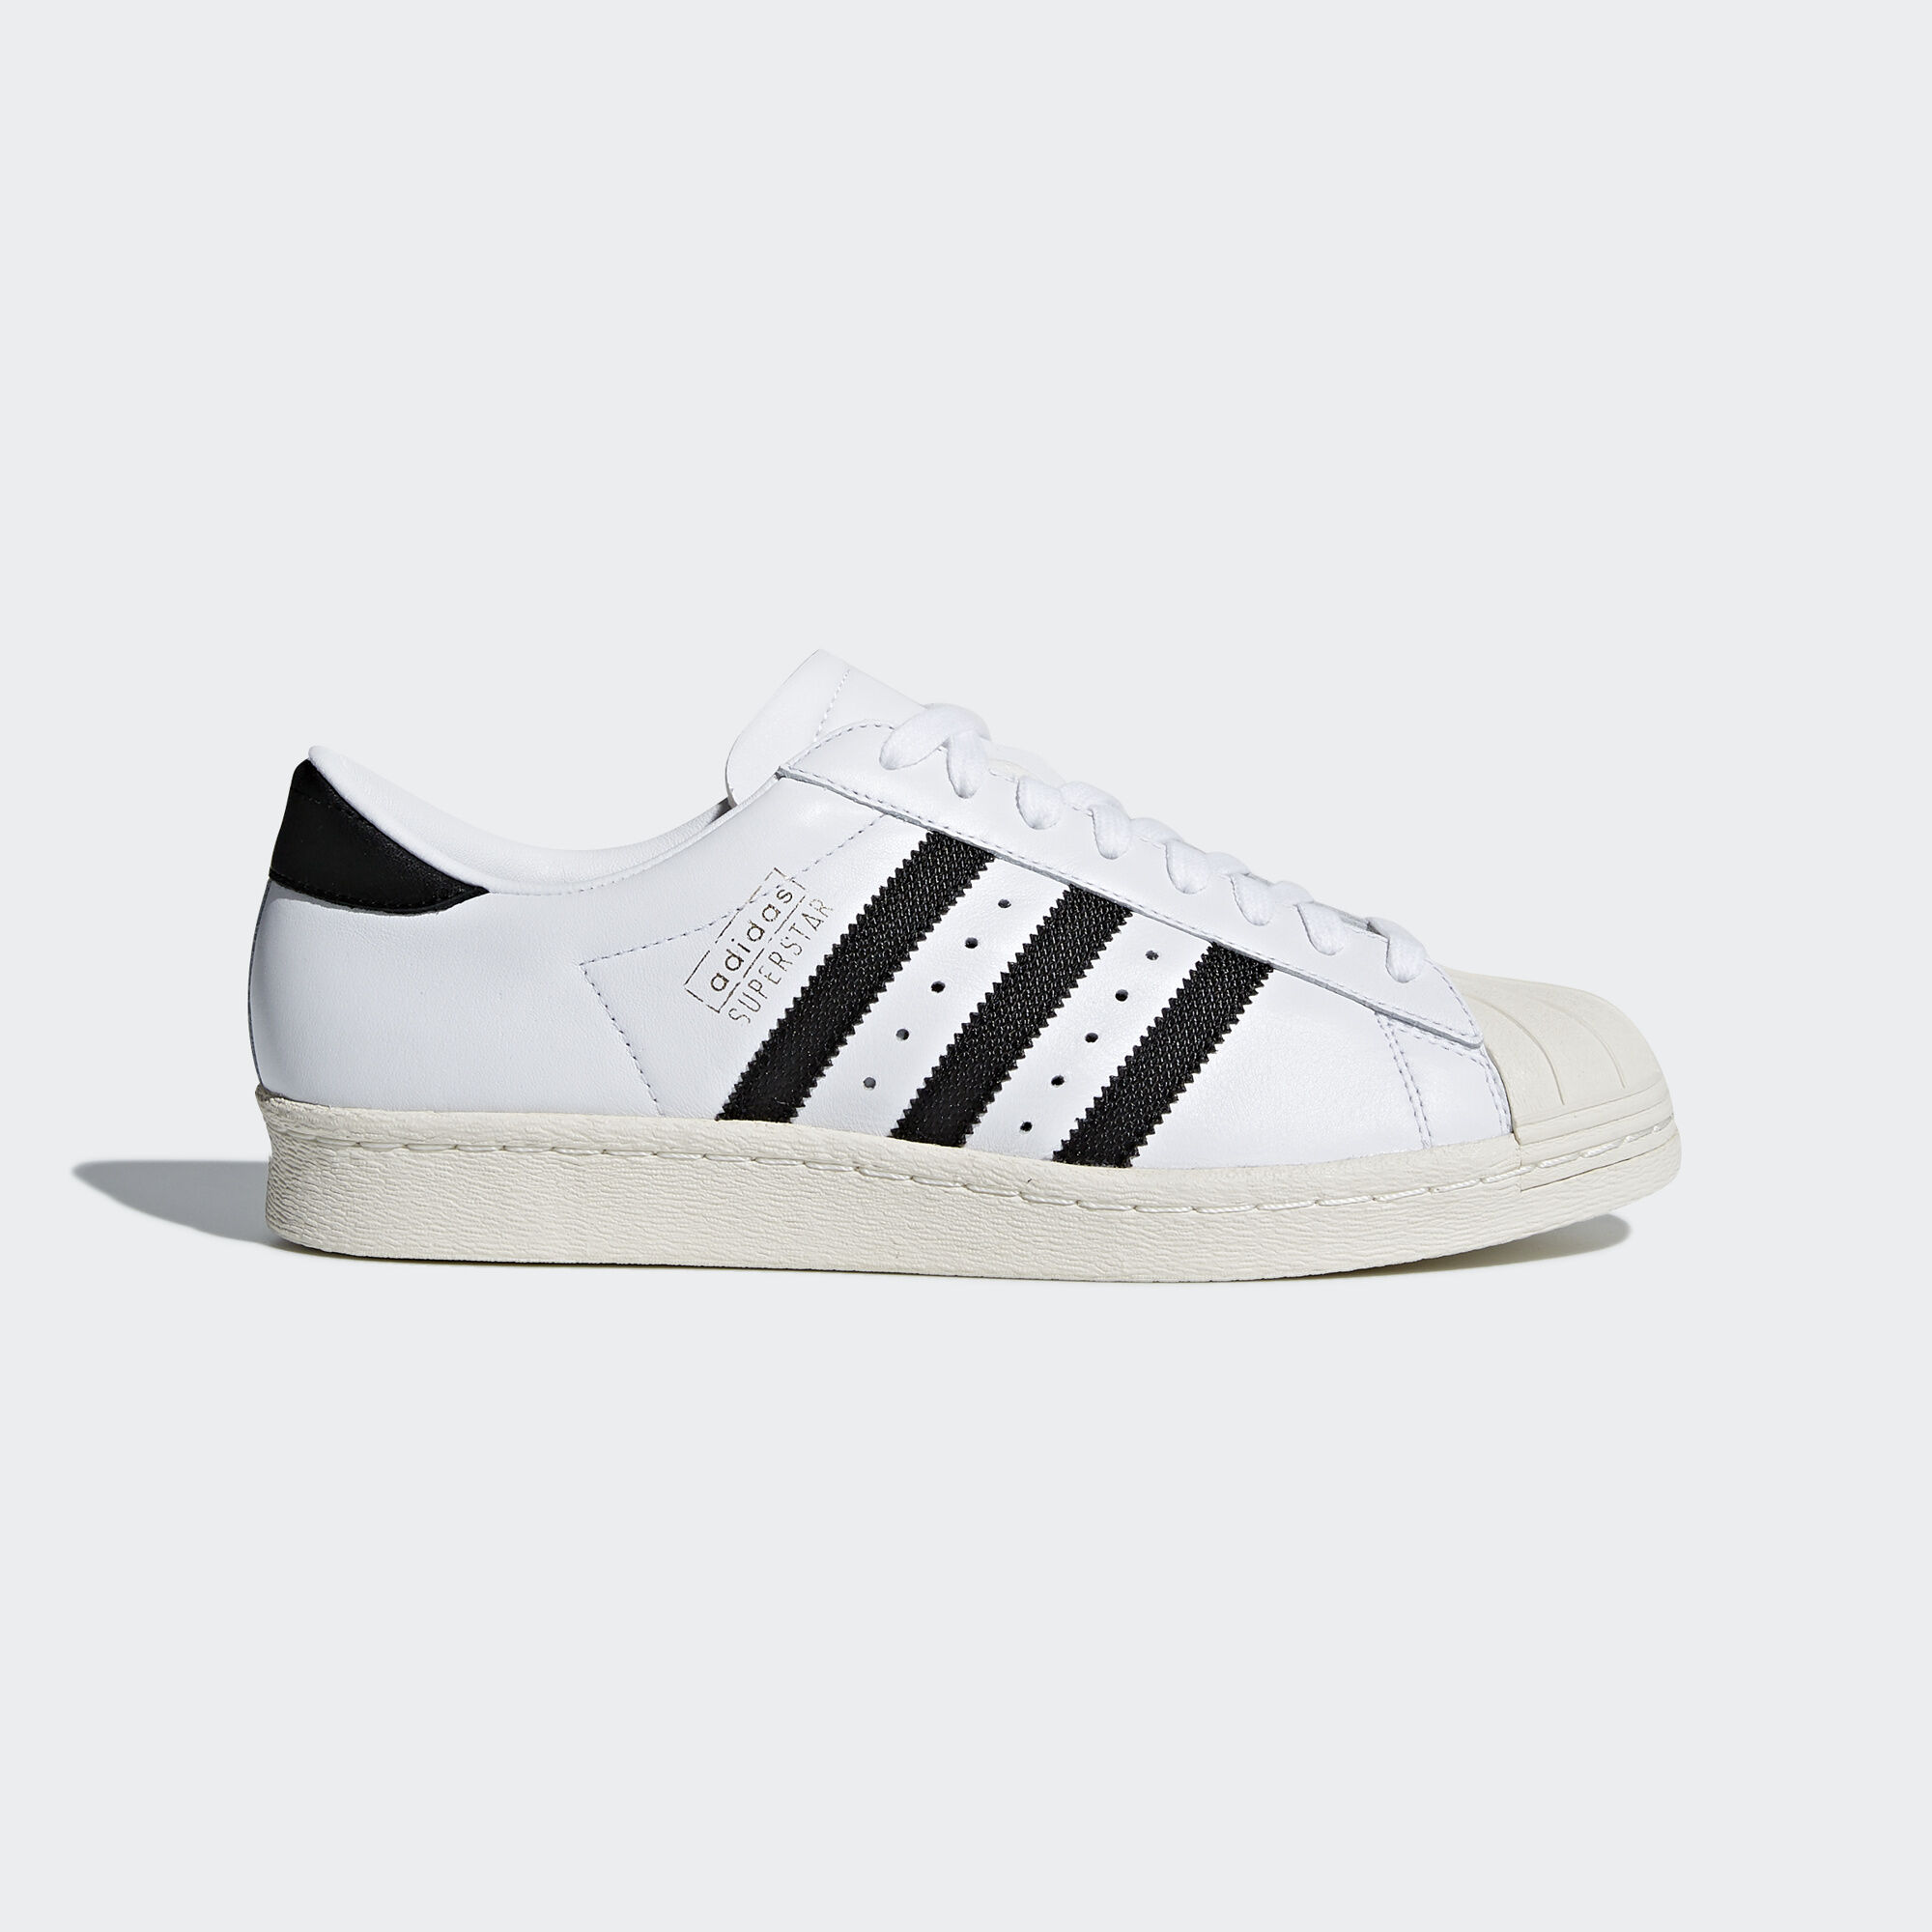 Adidas Shoes Flat  Off